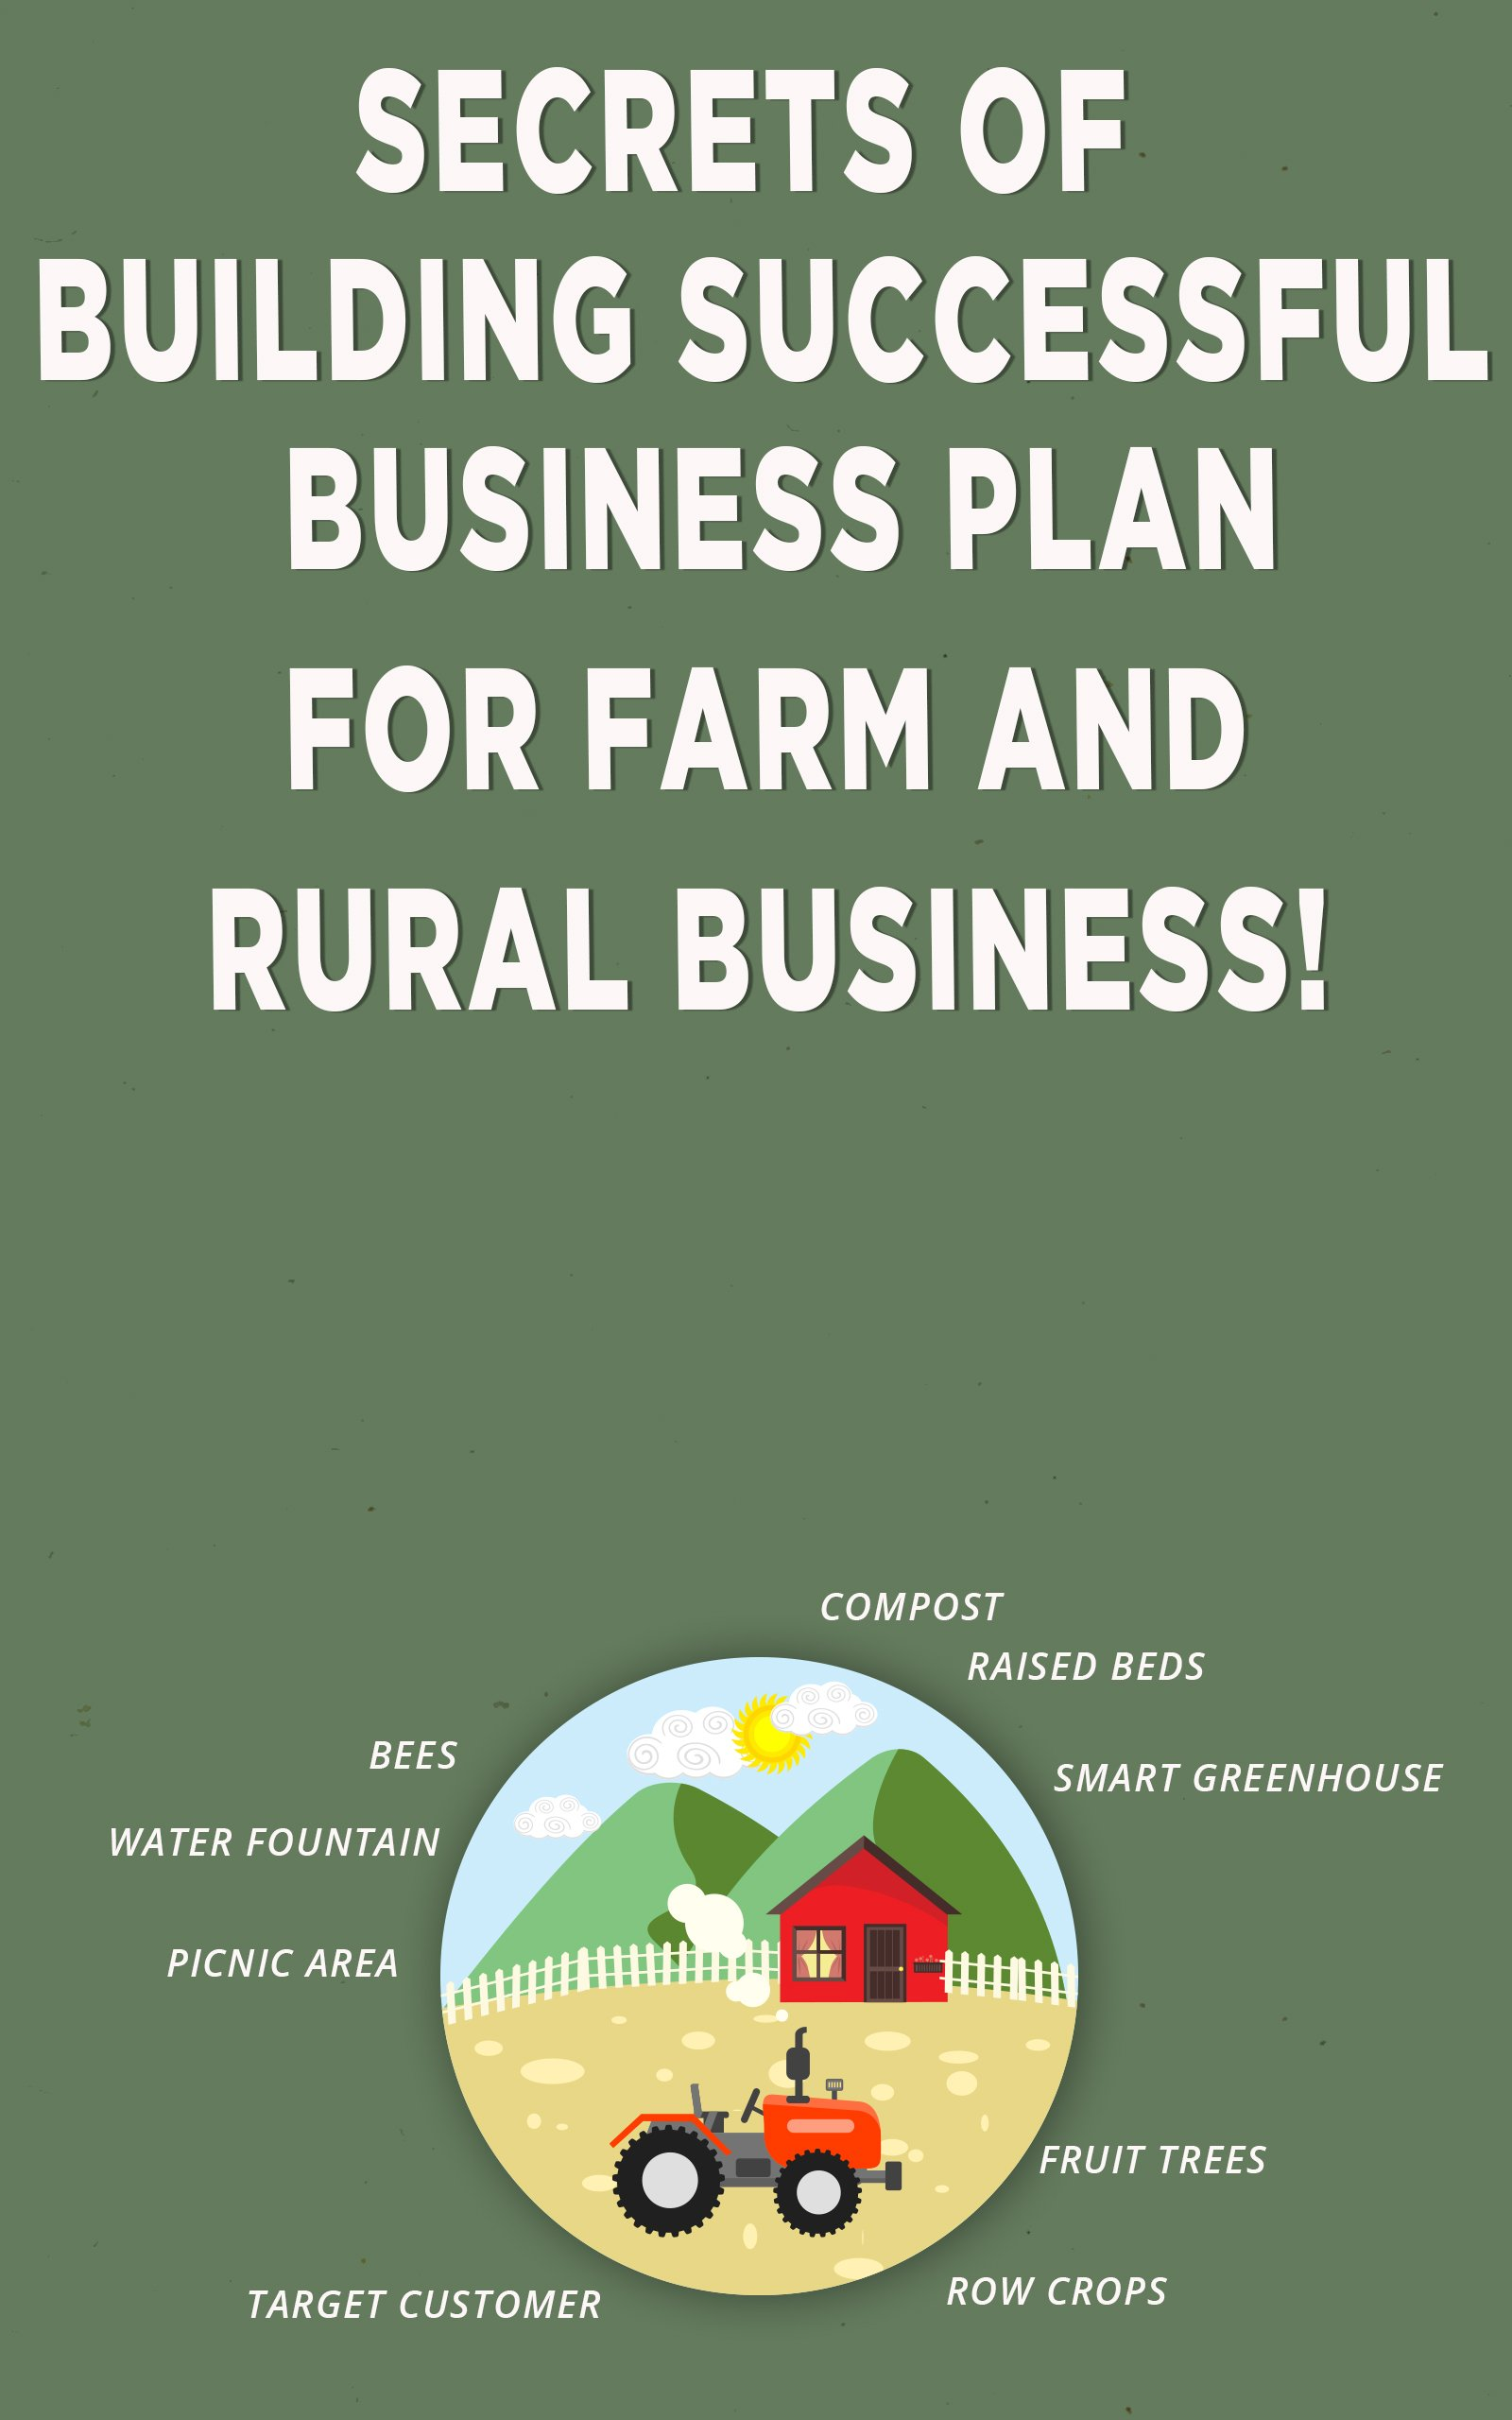 Secrets of Building Successful Business Plan for Farm and Rural Business!